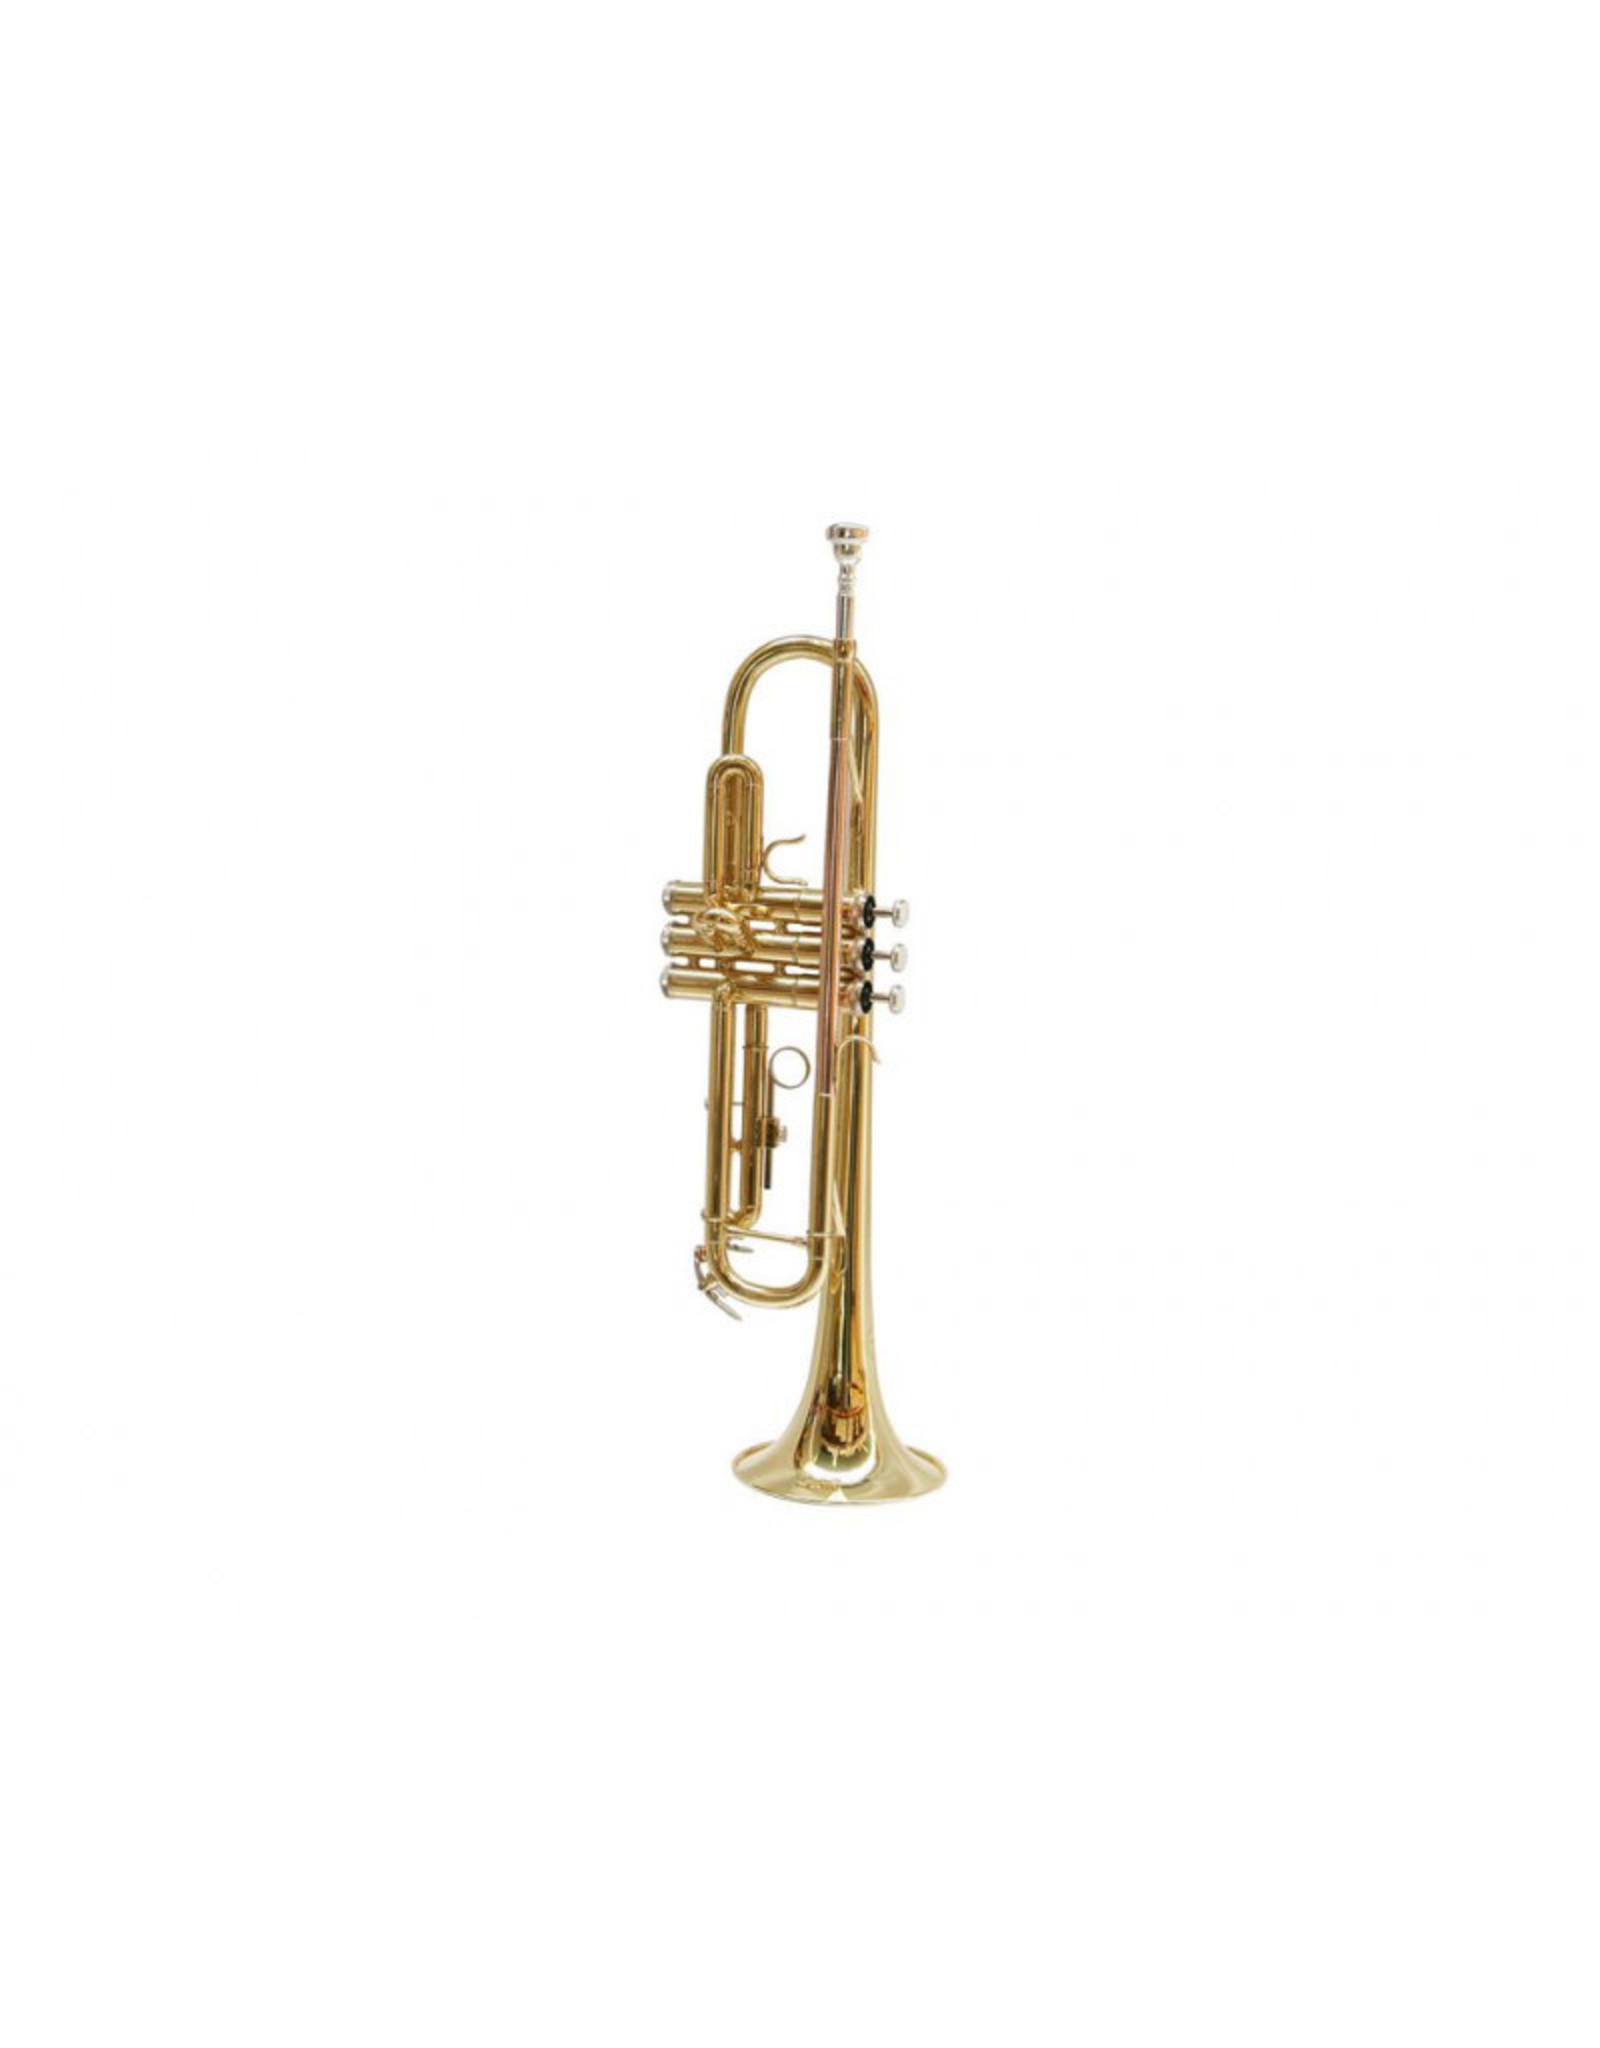 Purcell Purcell Trumpet lacquer monel valve SDTR-4315L